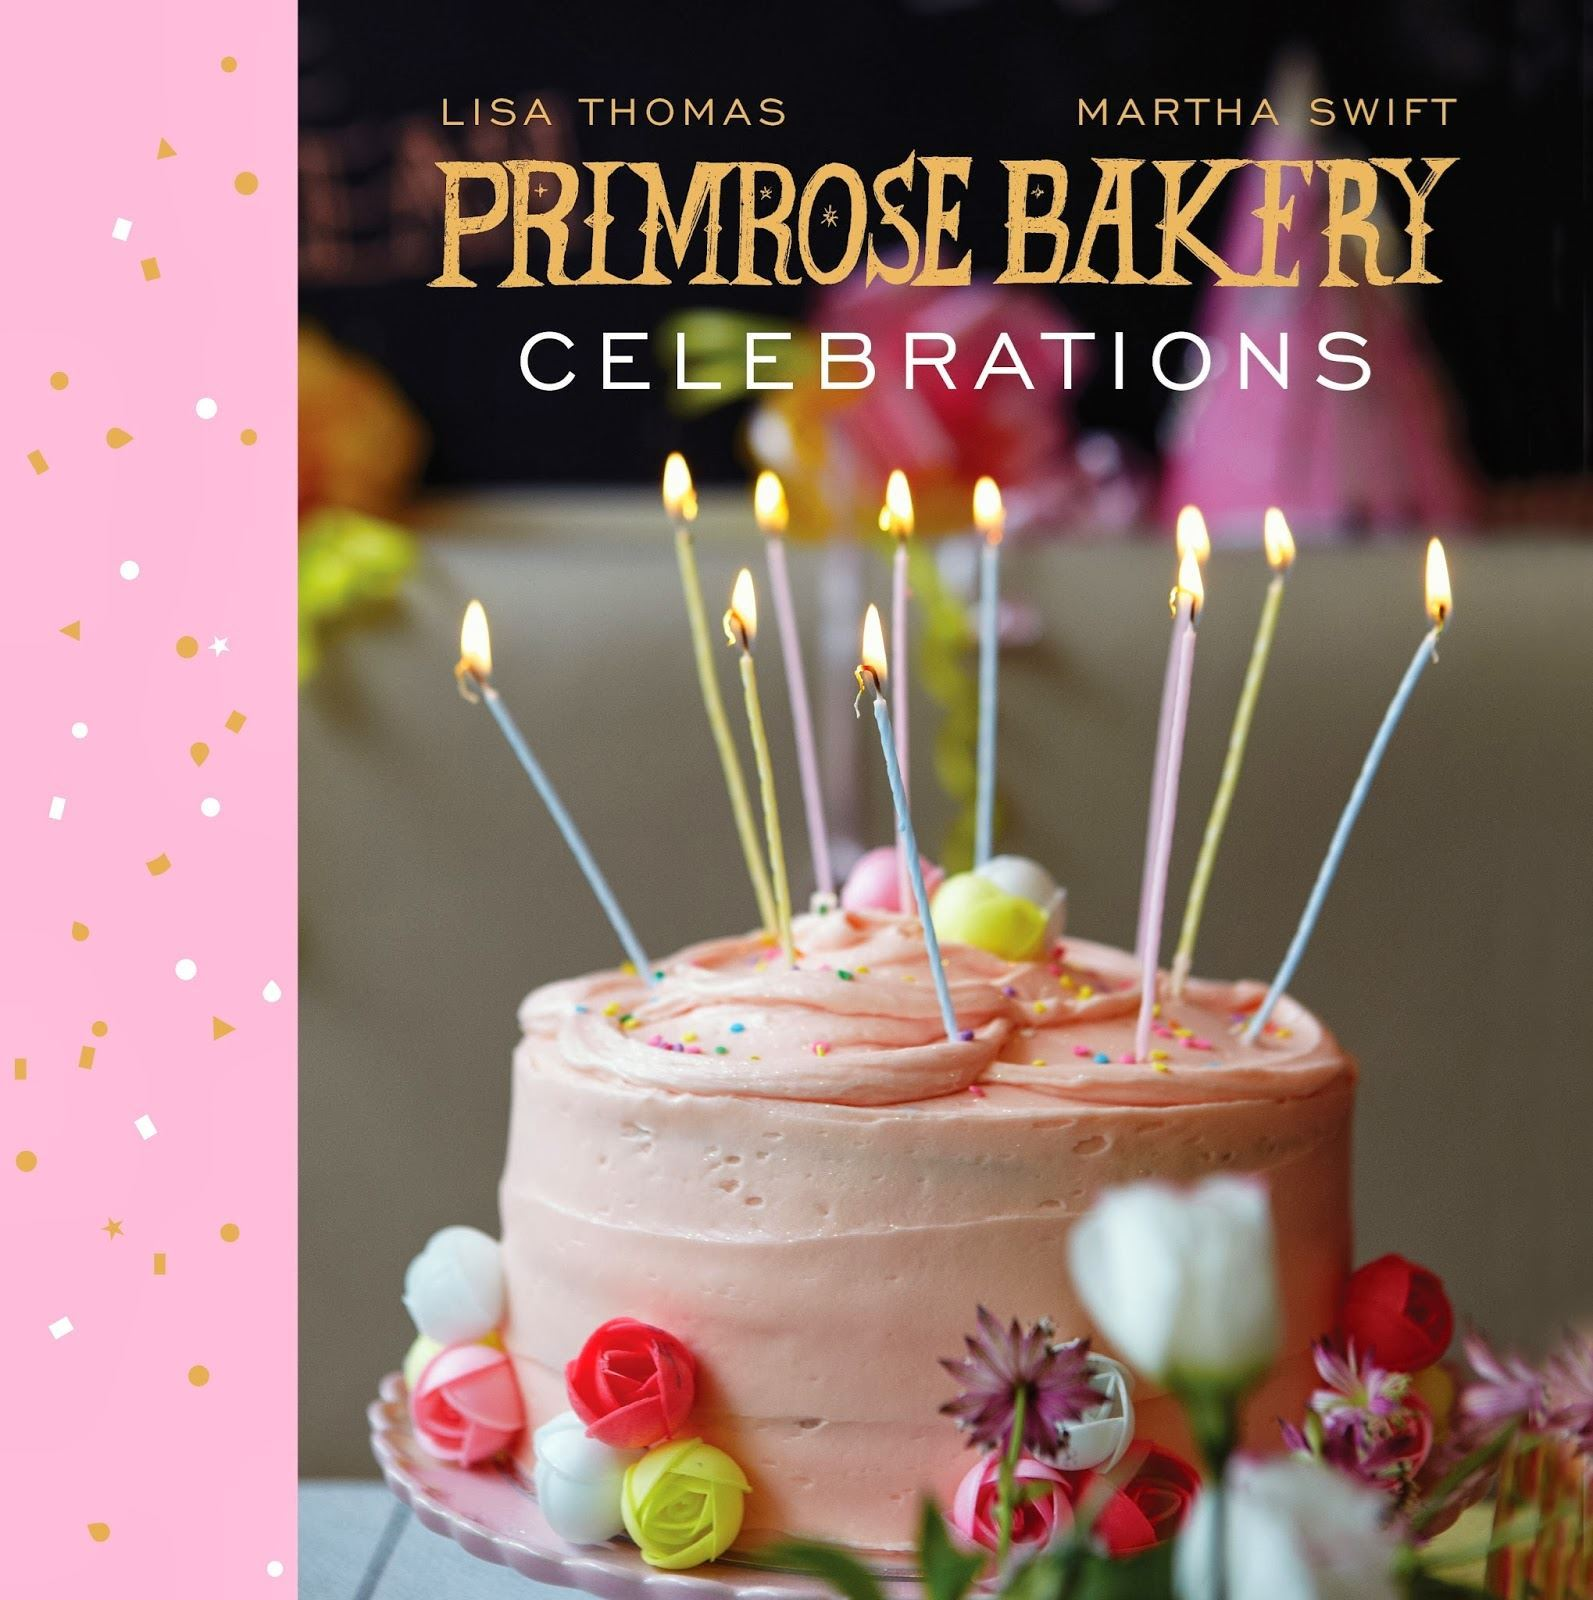 Primrose Bakery Gift Shop Cake Delivery London Cupcakes To Order